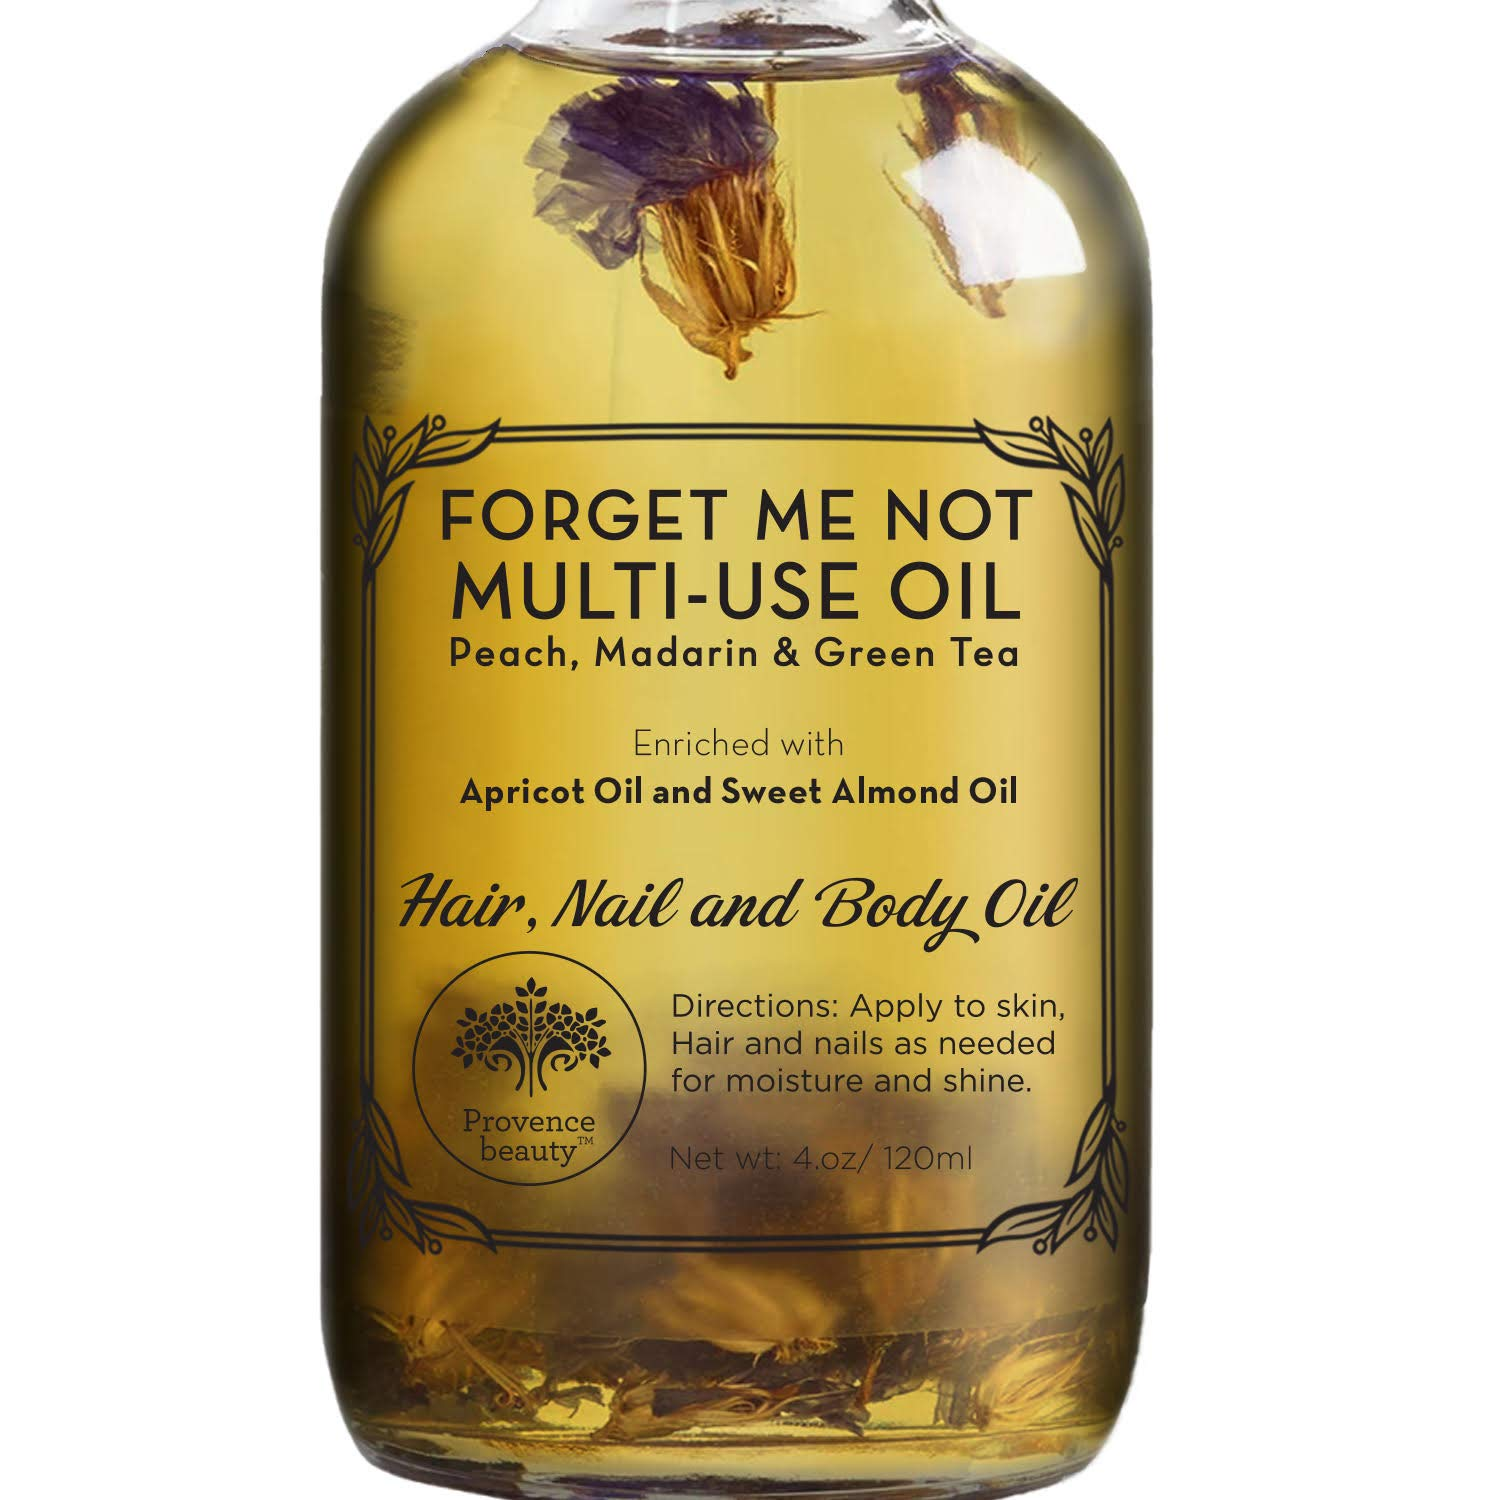 Multi-Use Oil for Face, Body and Hair - Forget Me Not - Organic Blend of Apricot, Vitamin E and Sweet Almond Oil Moisturizer for Dry Skin, Scalp and Nails - Peach, Mandorin and Green Tea - 4 Fl Oz